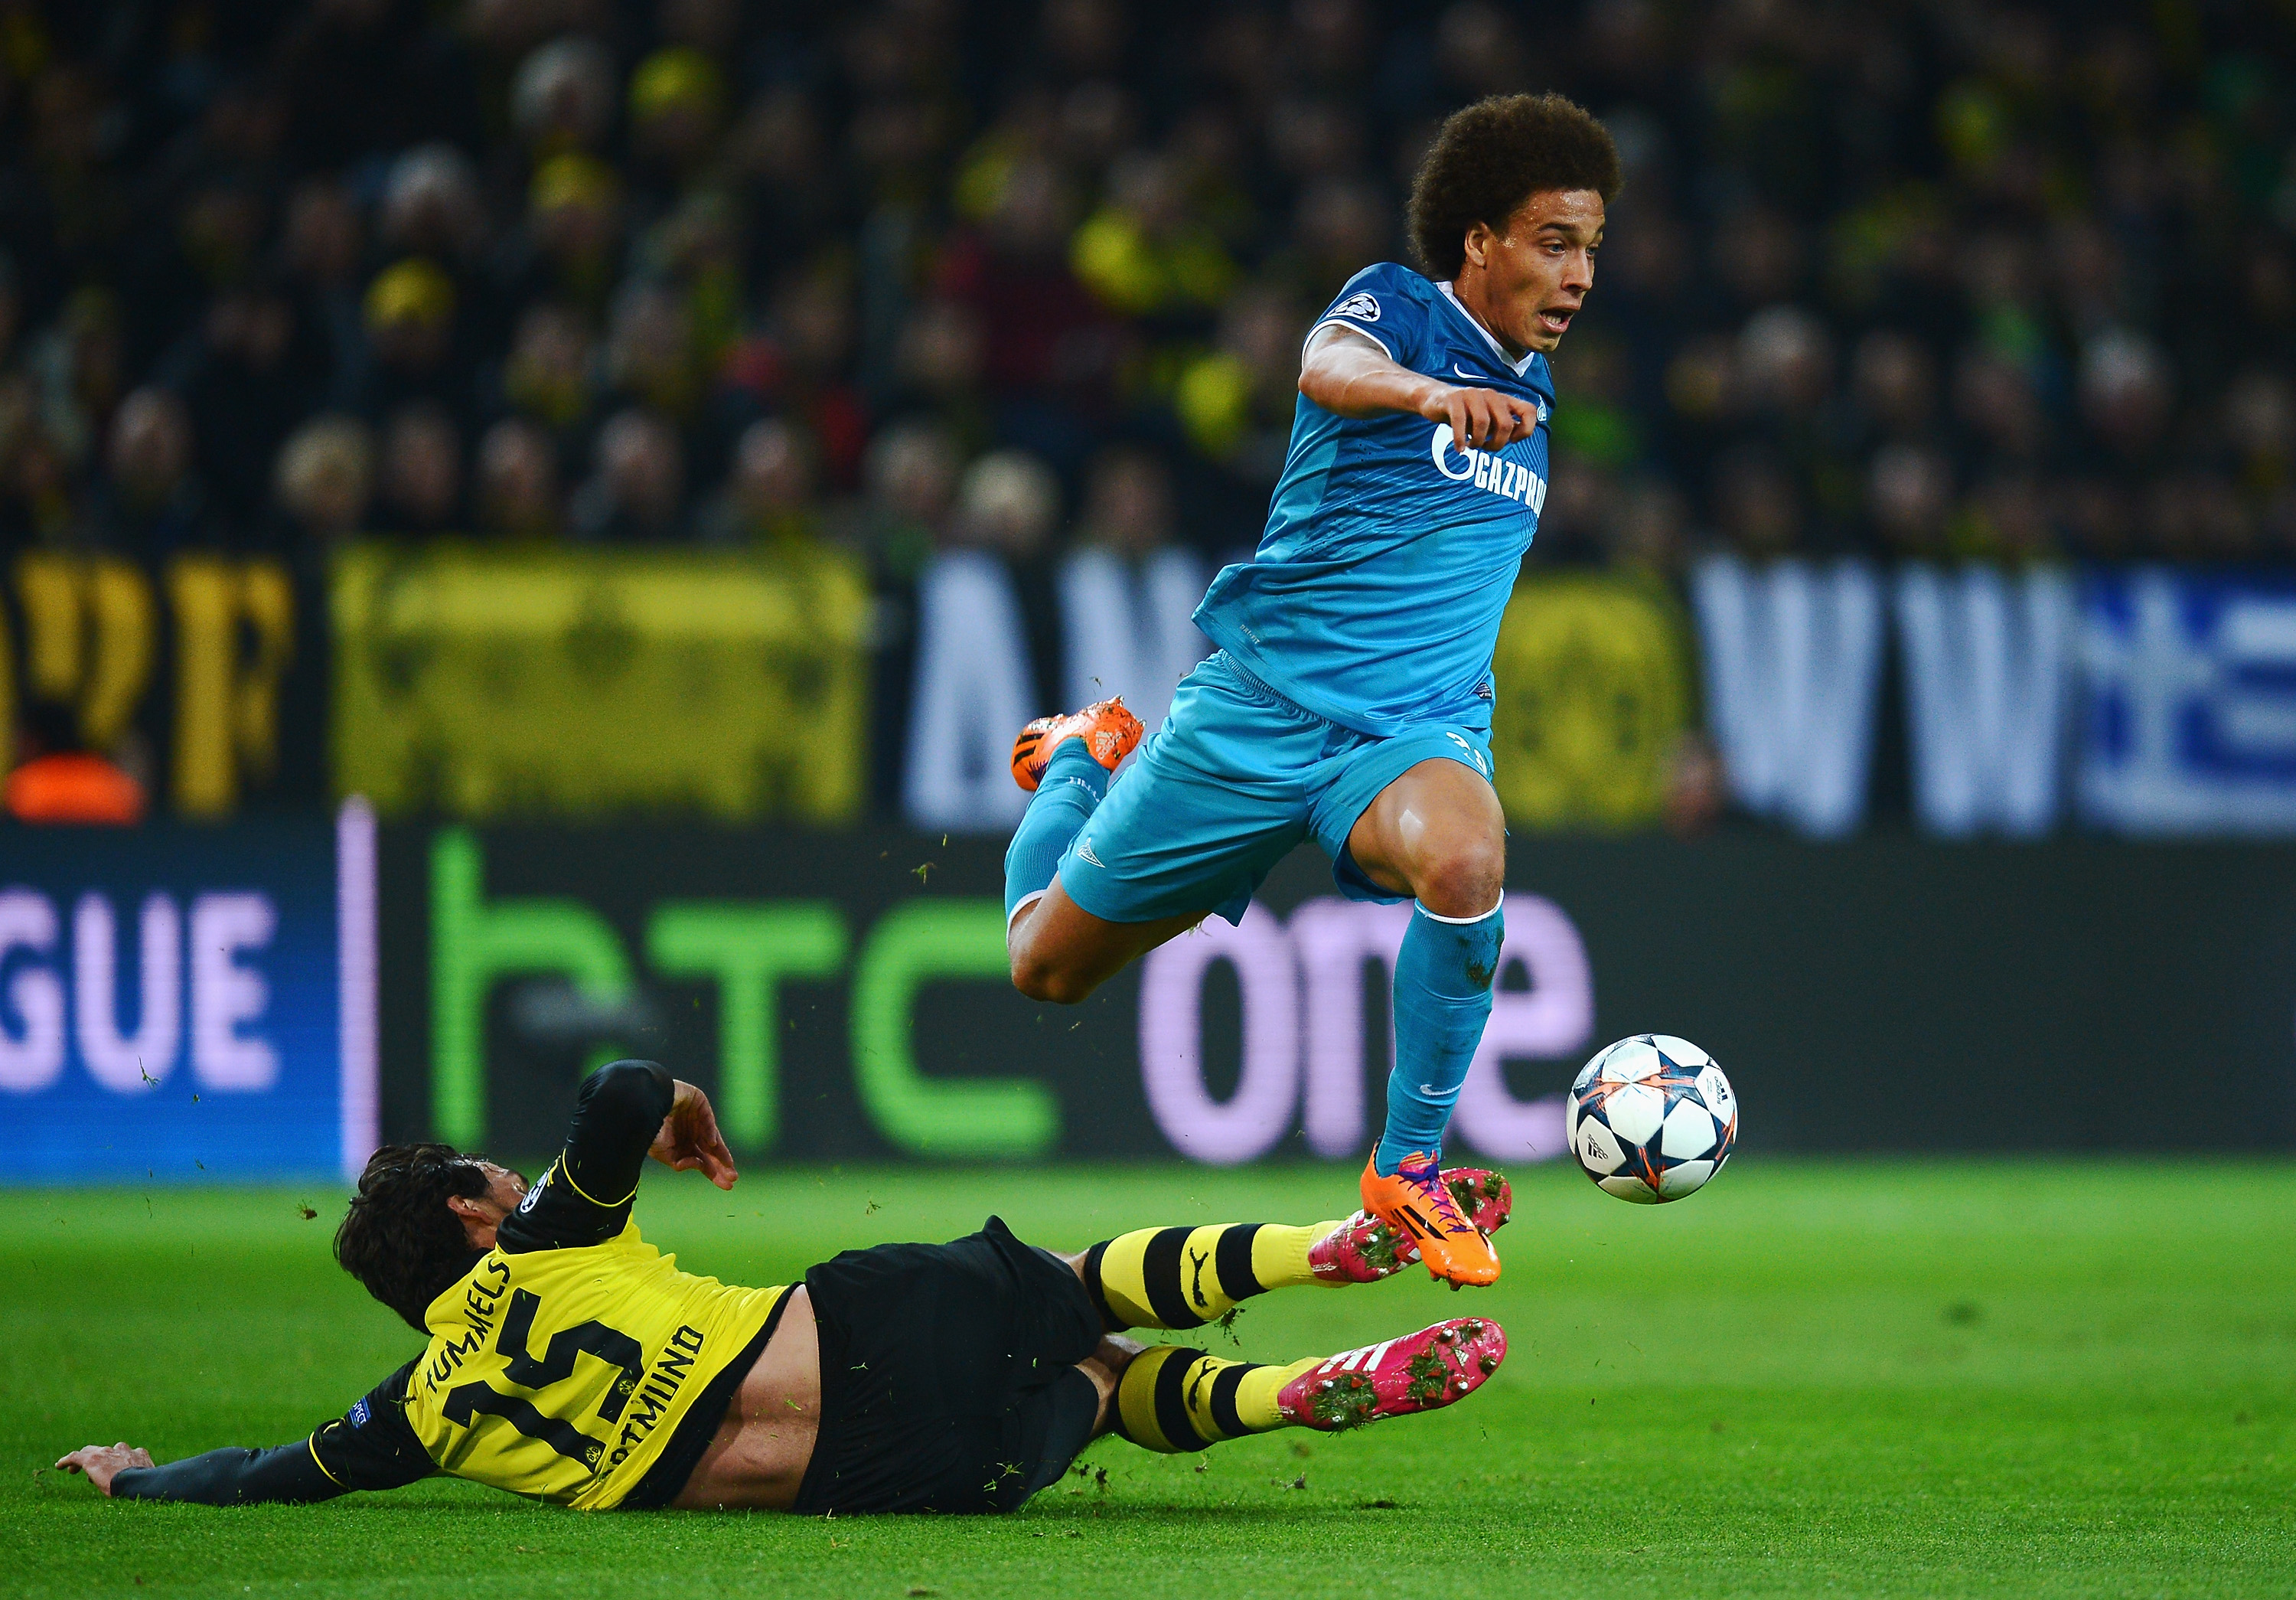 DORTMUND, GERMANY - MARCH 19: Axel Witsel of Zenit is tackled by Mats Hummels of Dortmund during the UEFA Champions League round of 16, second leg match between Borussia Dortmund and FC Zenit at Signal Iduna Park on March 19, 2014 in Dortmund, Germany. (Photo by Lars Baron/Bongarts/Getty Images)